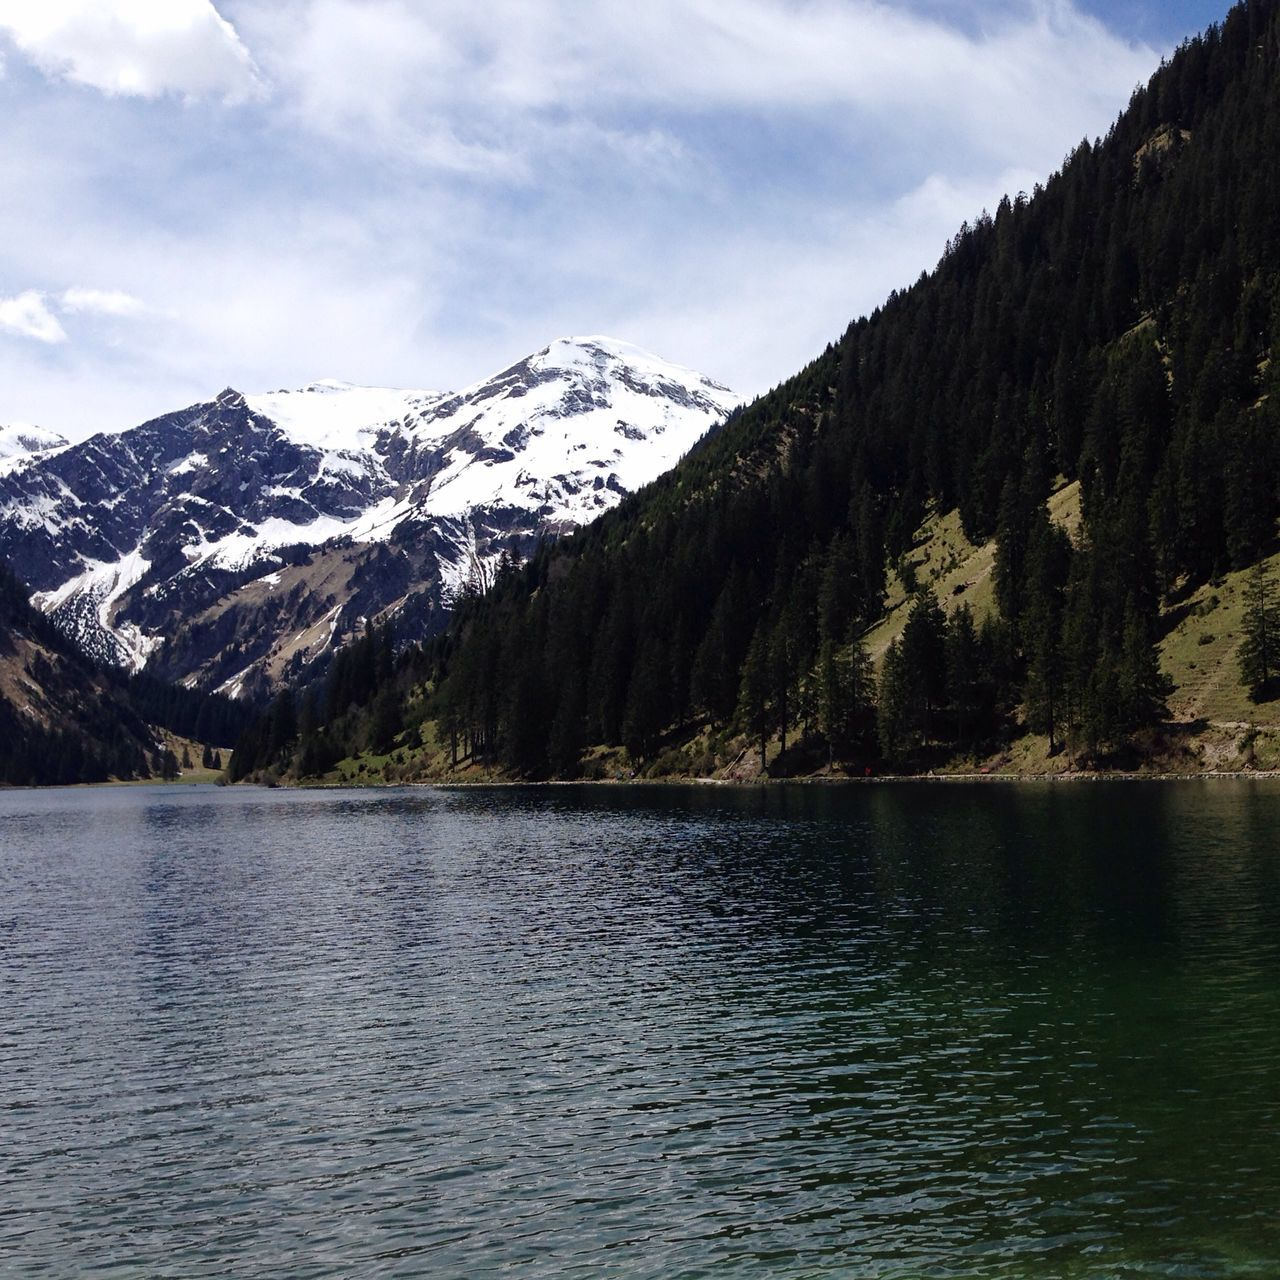 Scenic lake an mountain view; Vilsalpsee Tannheimer Tal Mountain Beauty In Nature Nature Scenics Tranquil Scene Sky Snow Lake Water Outdoors Holiday Travel Tirol  Vilsalpsee Tannheimer Tal Spring Outdoor Landscape Light Life Colors Austria Nature Alps Nautical Vessel The Great Outdoors - 2017 EyeEm Awards